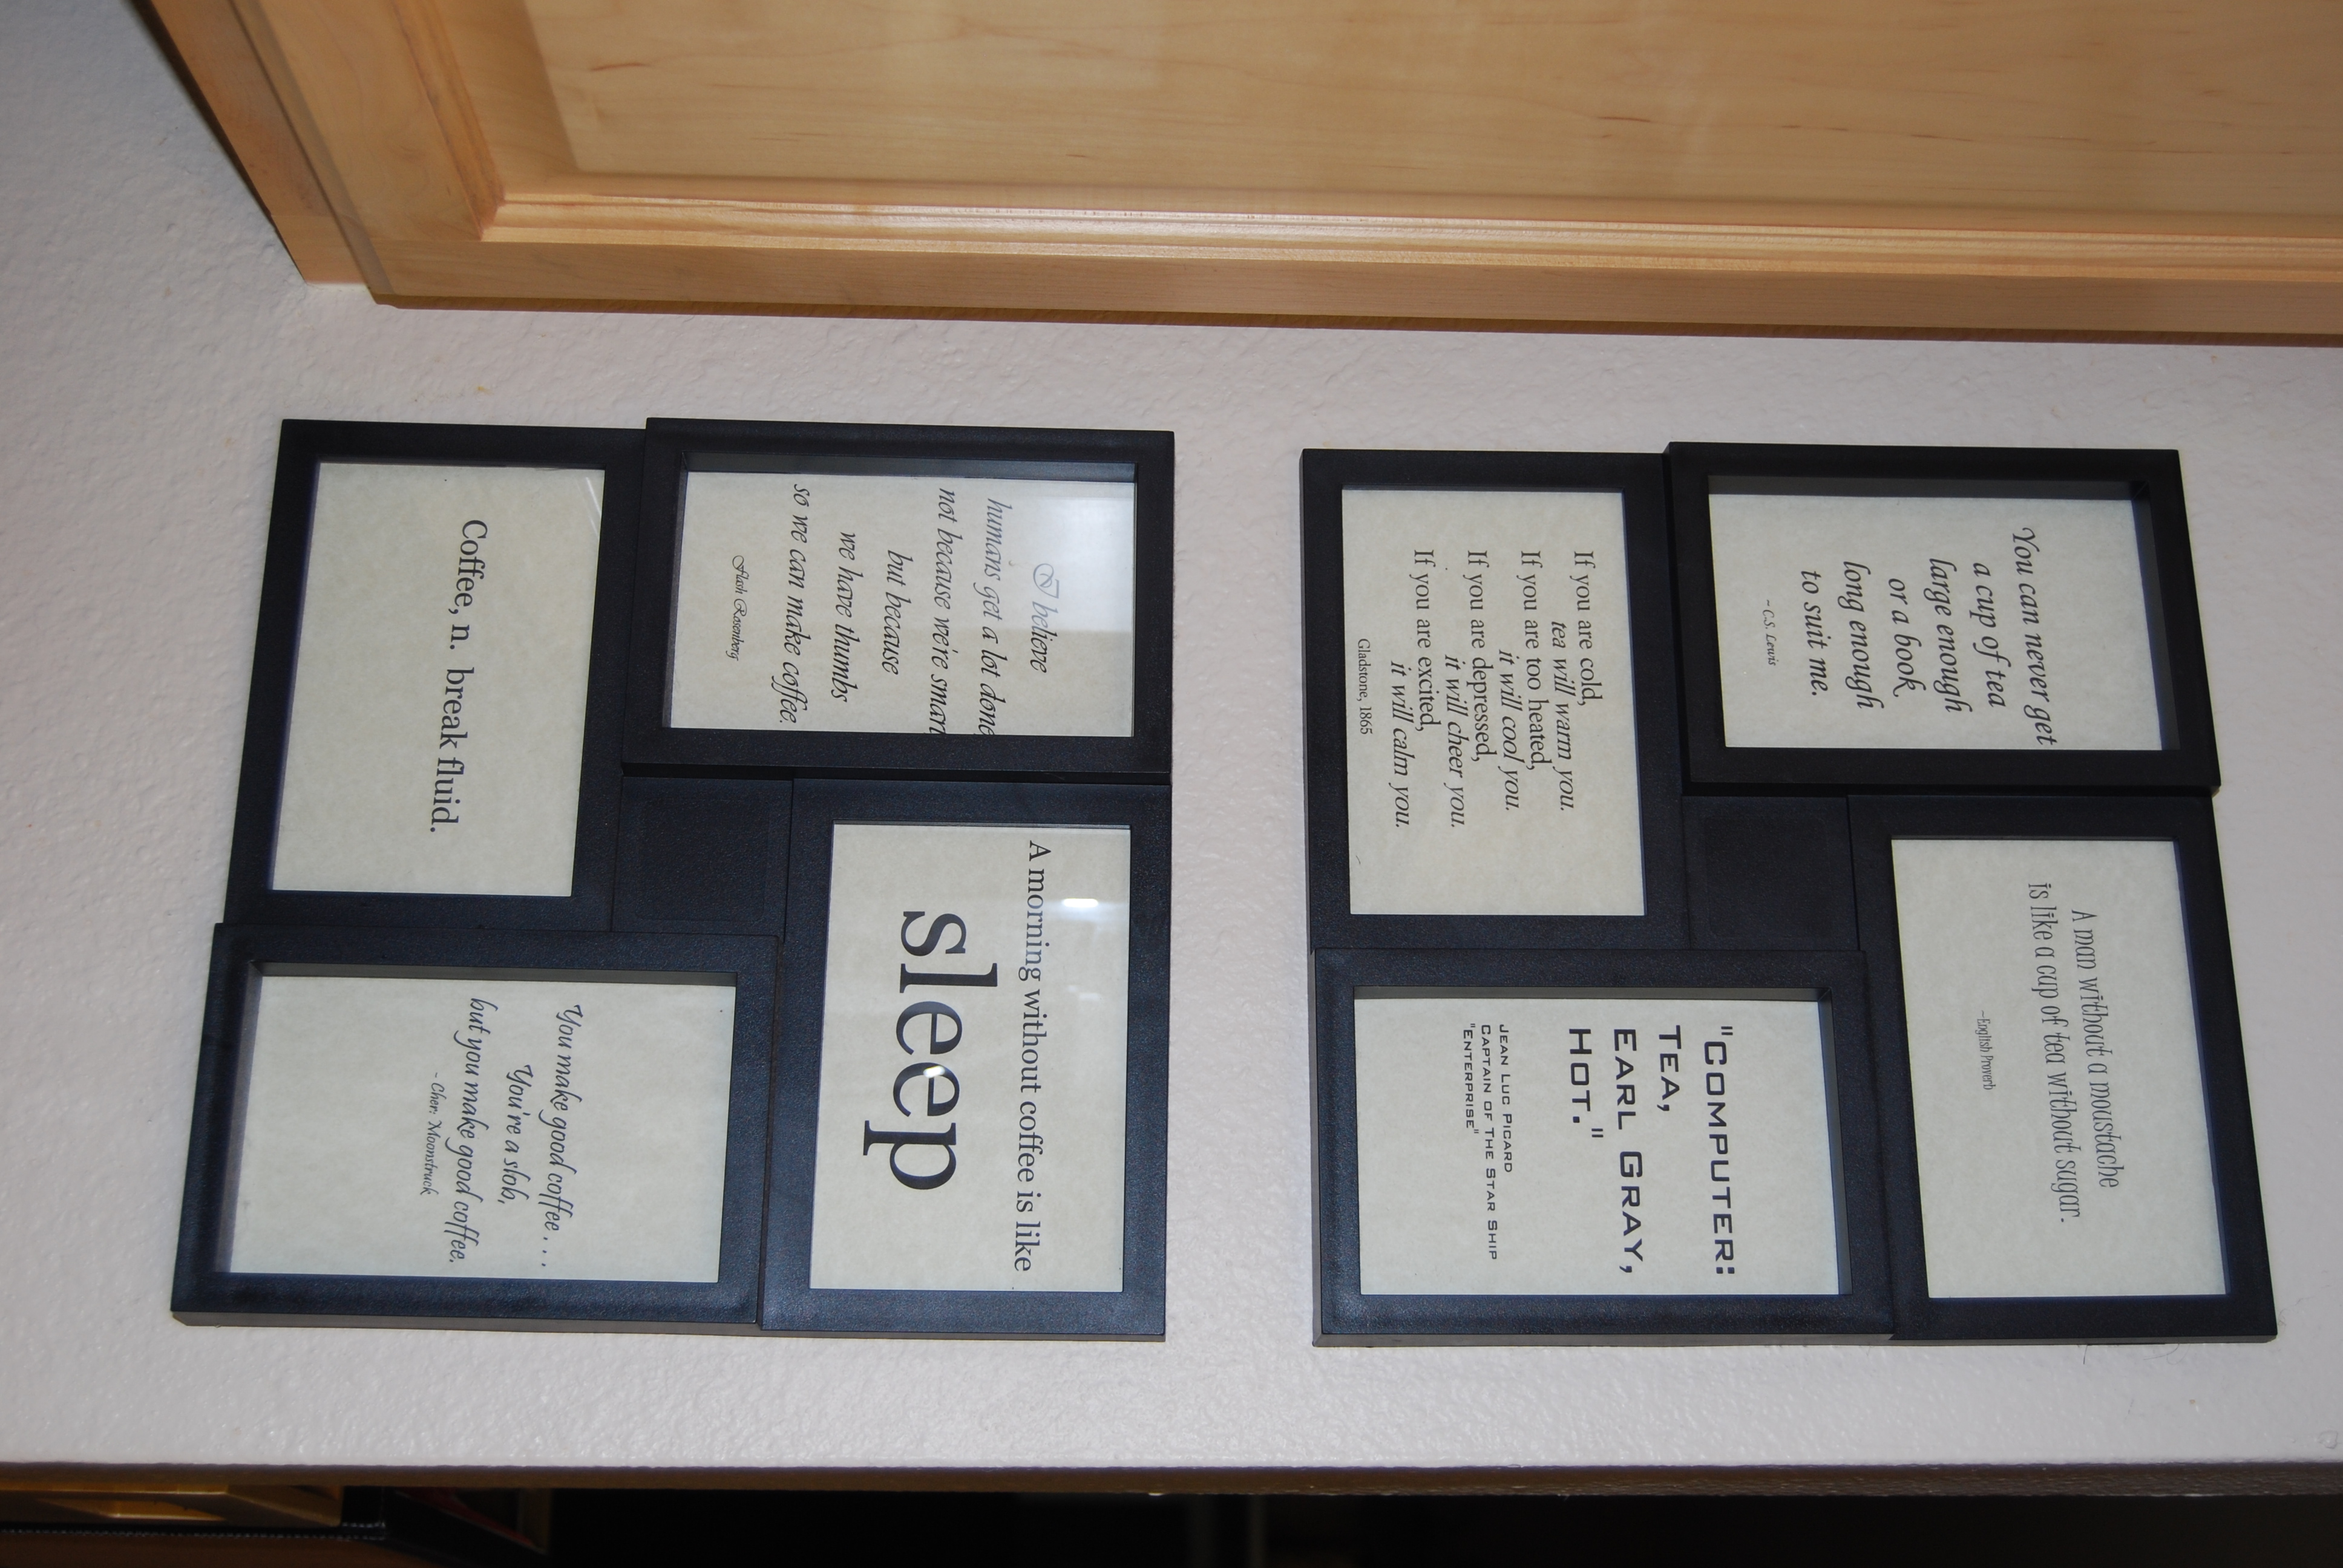 Framing quote #2